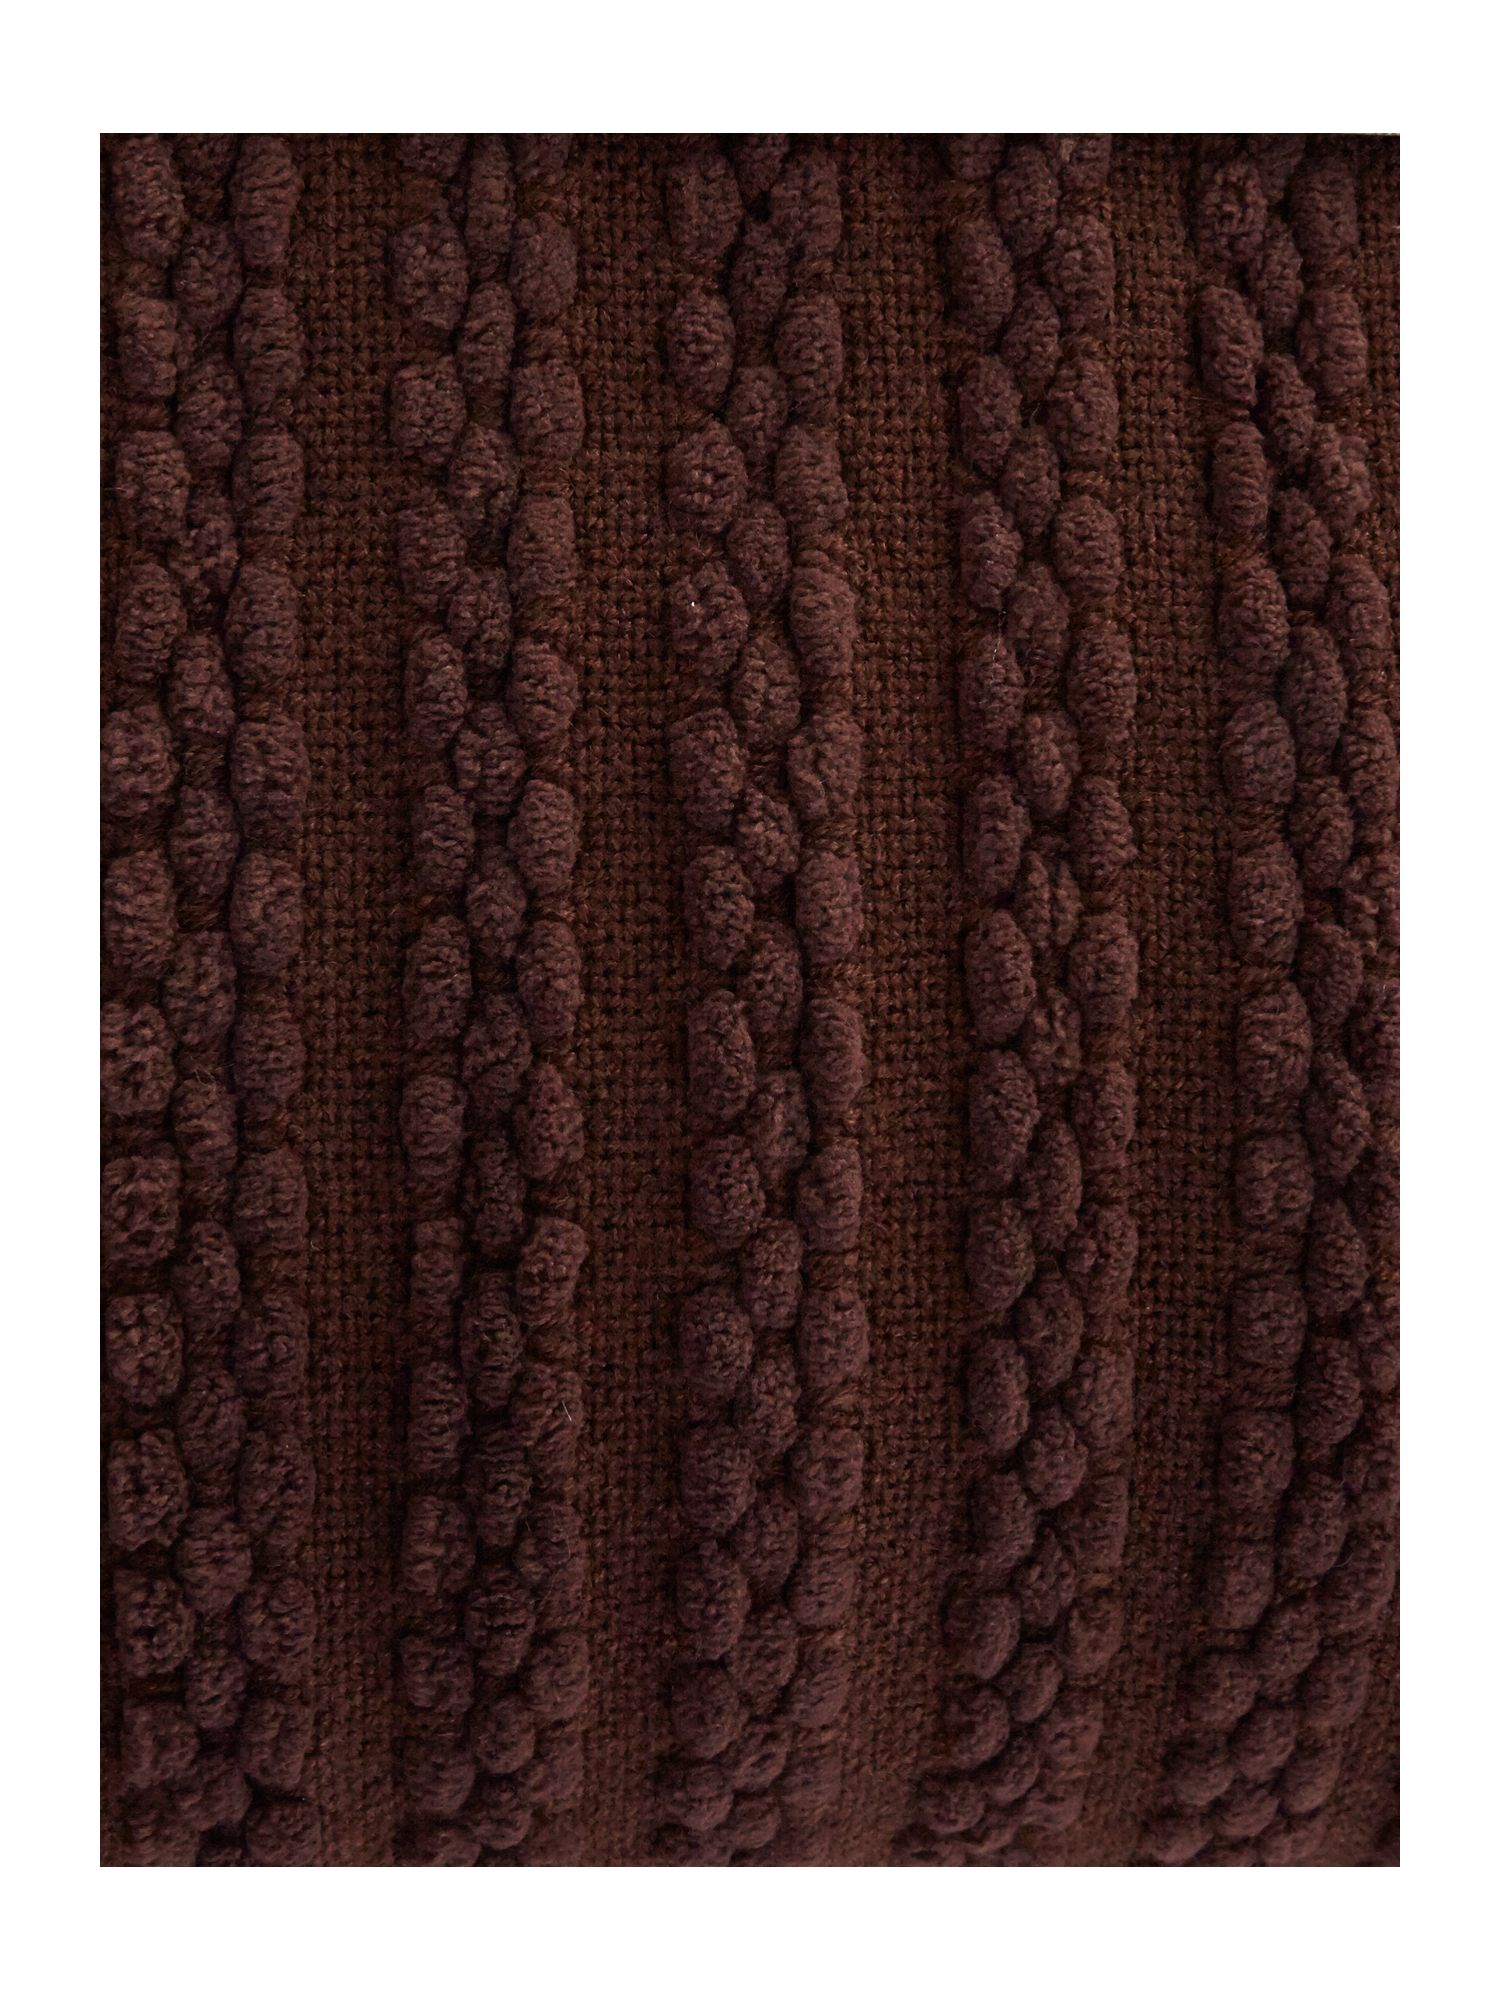 Chocolate paw stitch chenille throw